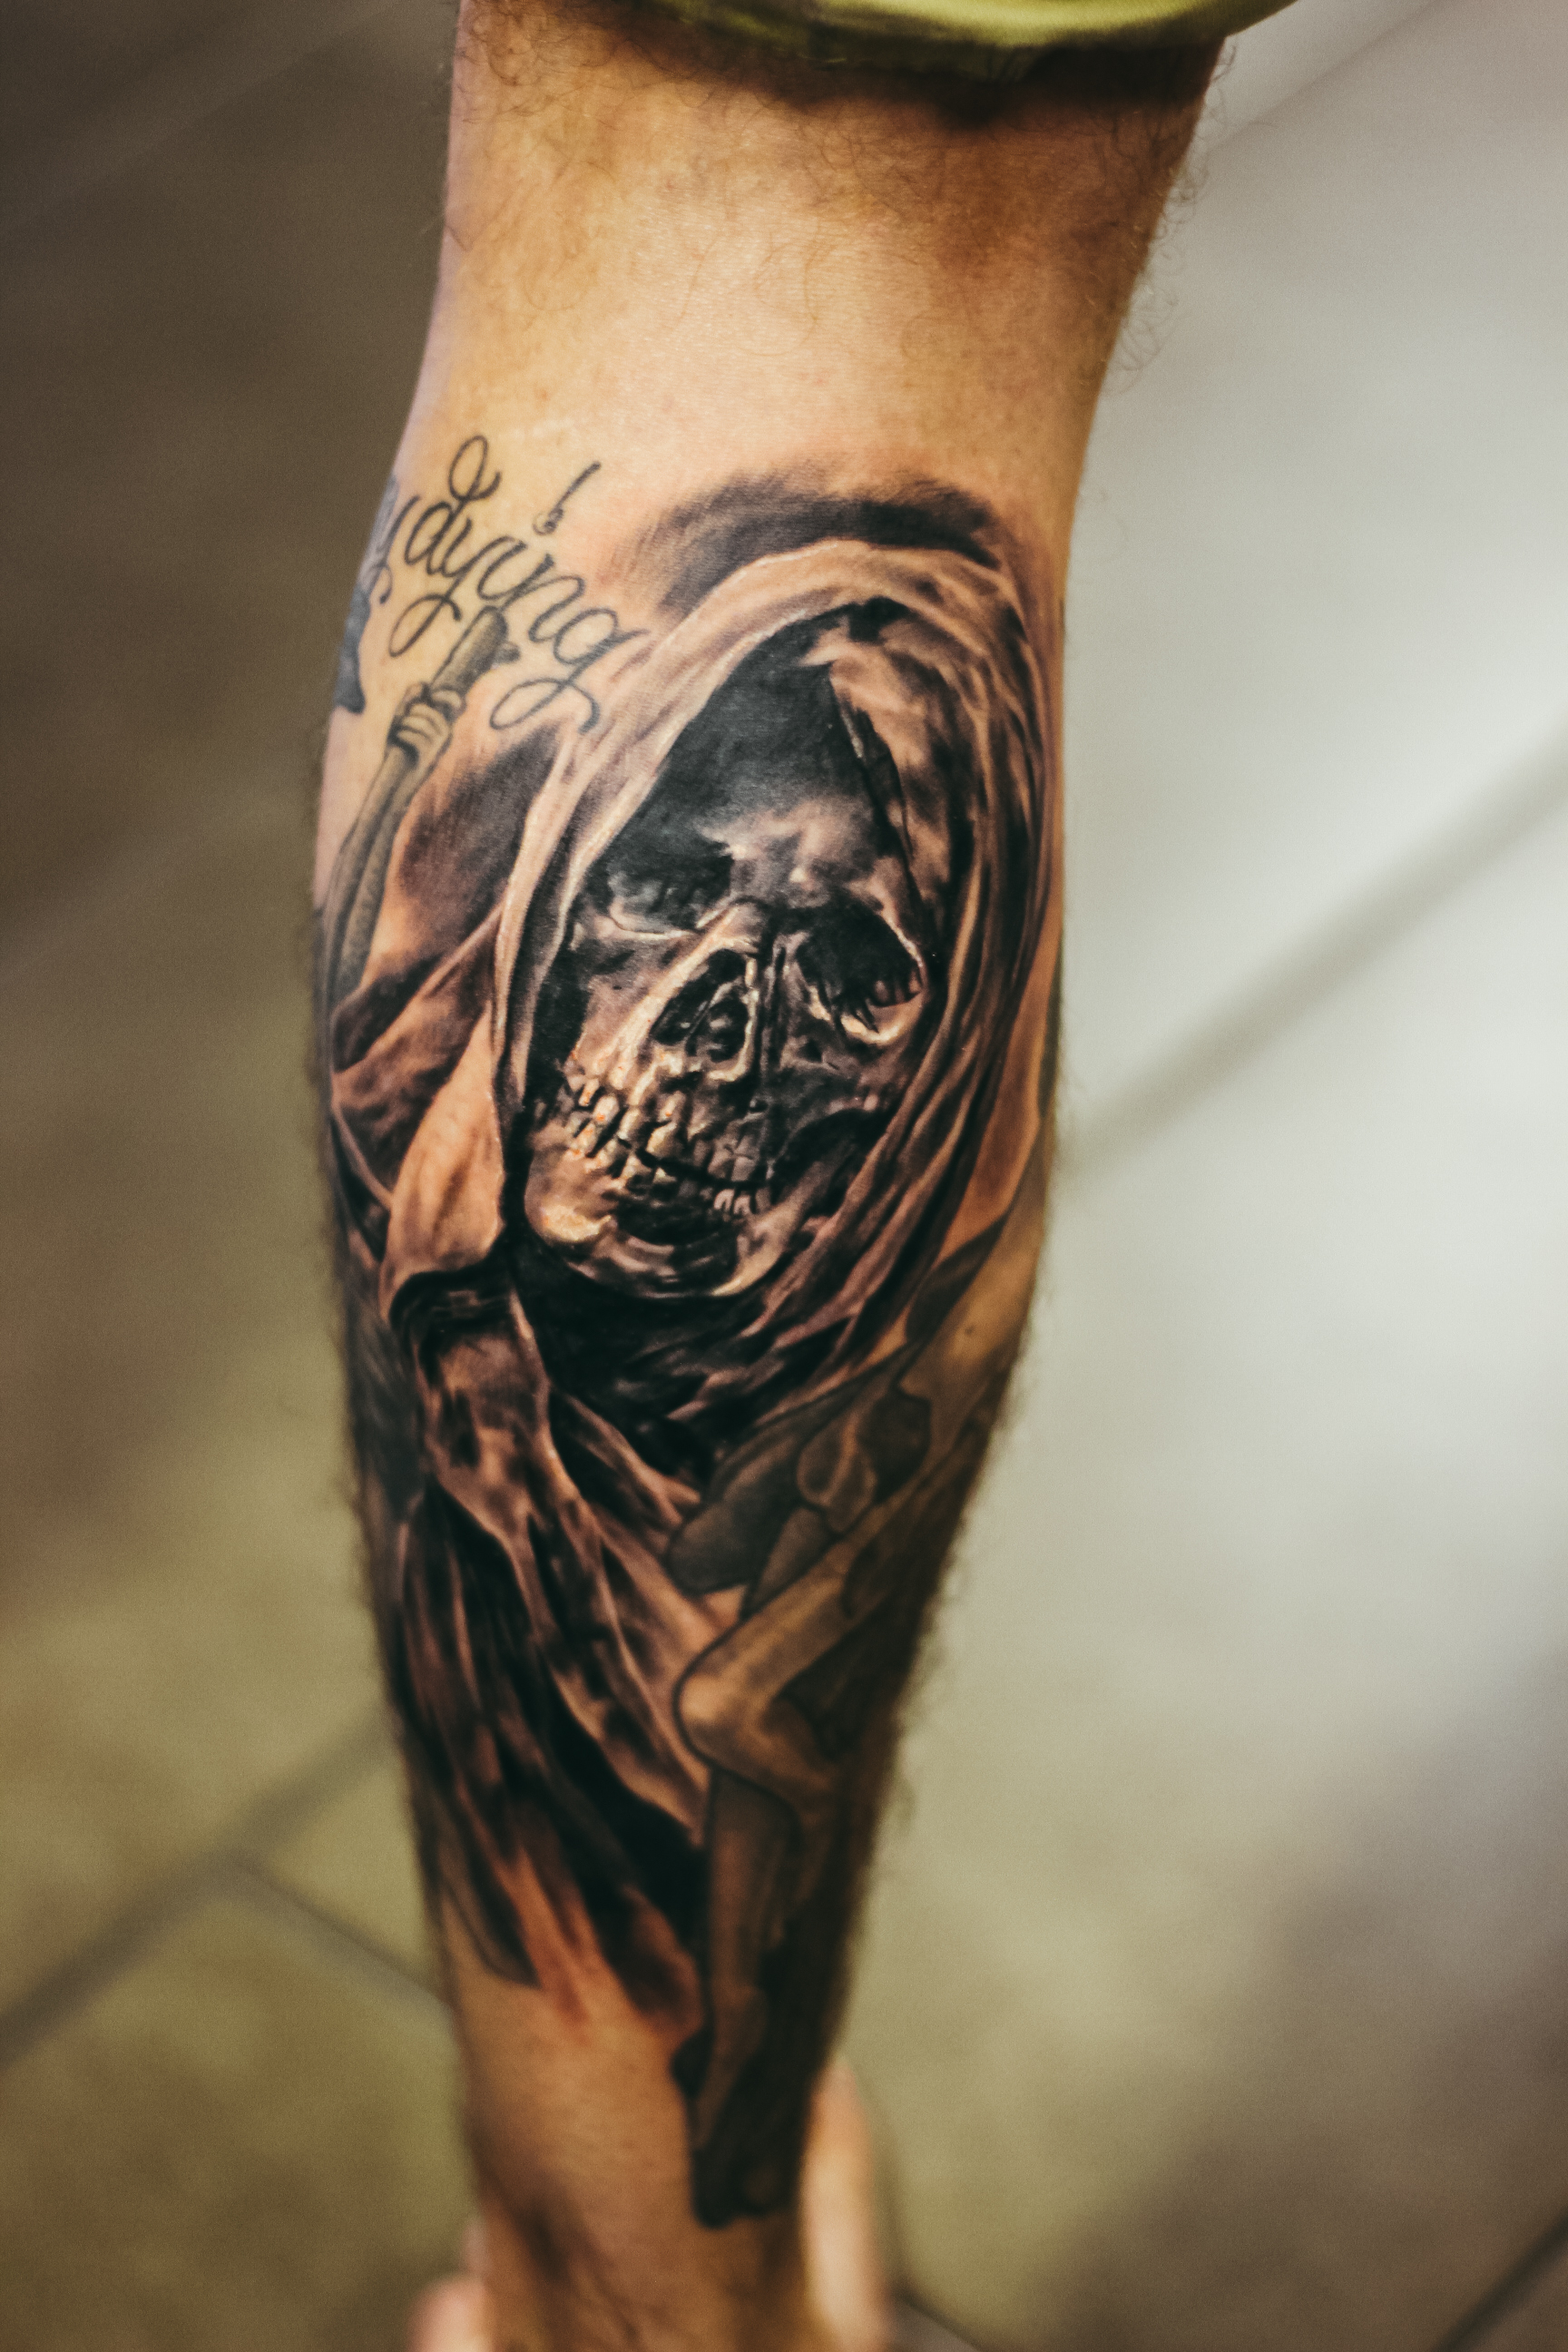 FYINK_tattoos-shoplife-june-34.jpg